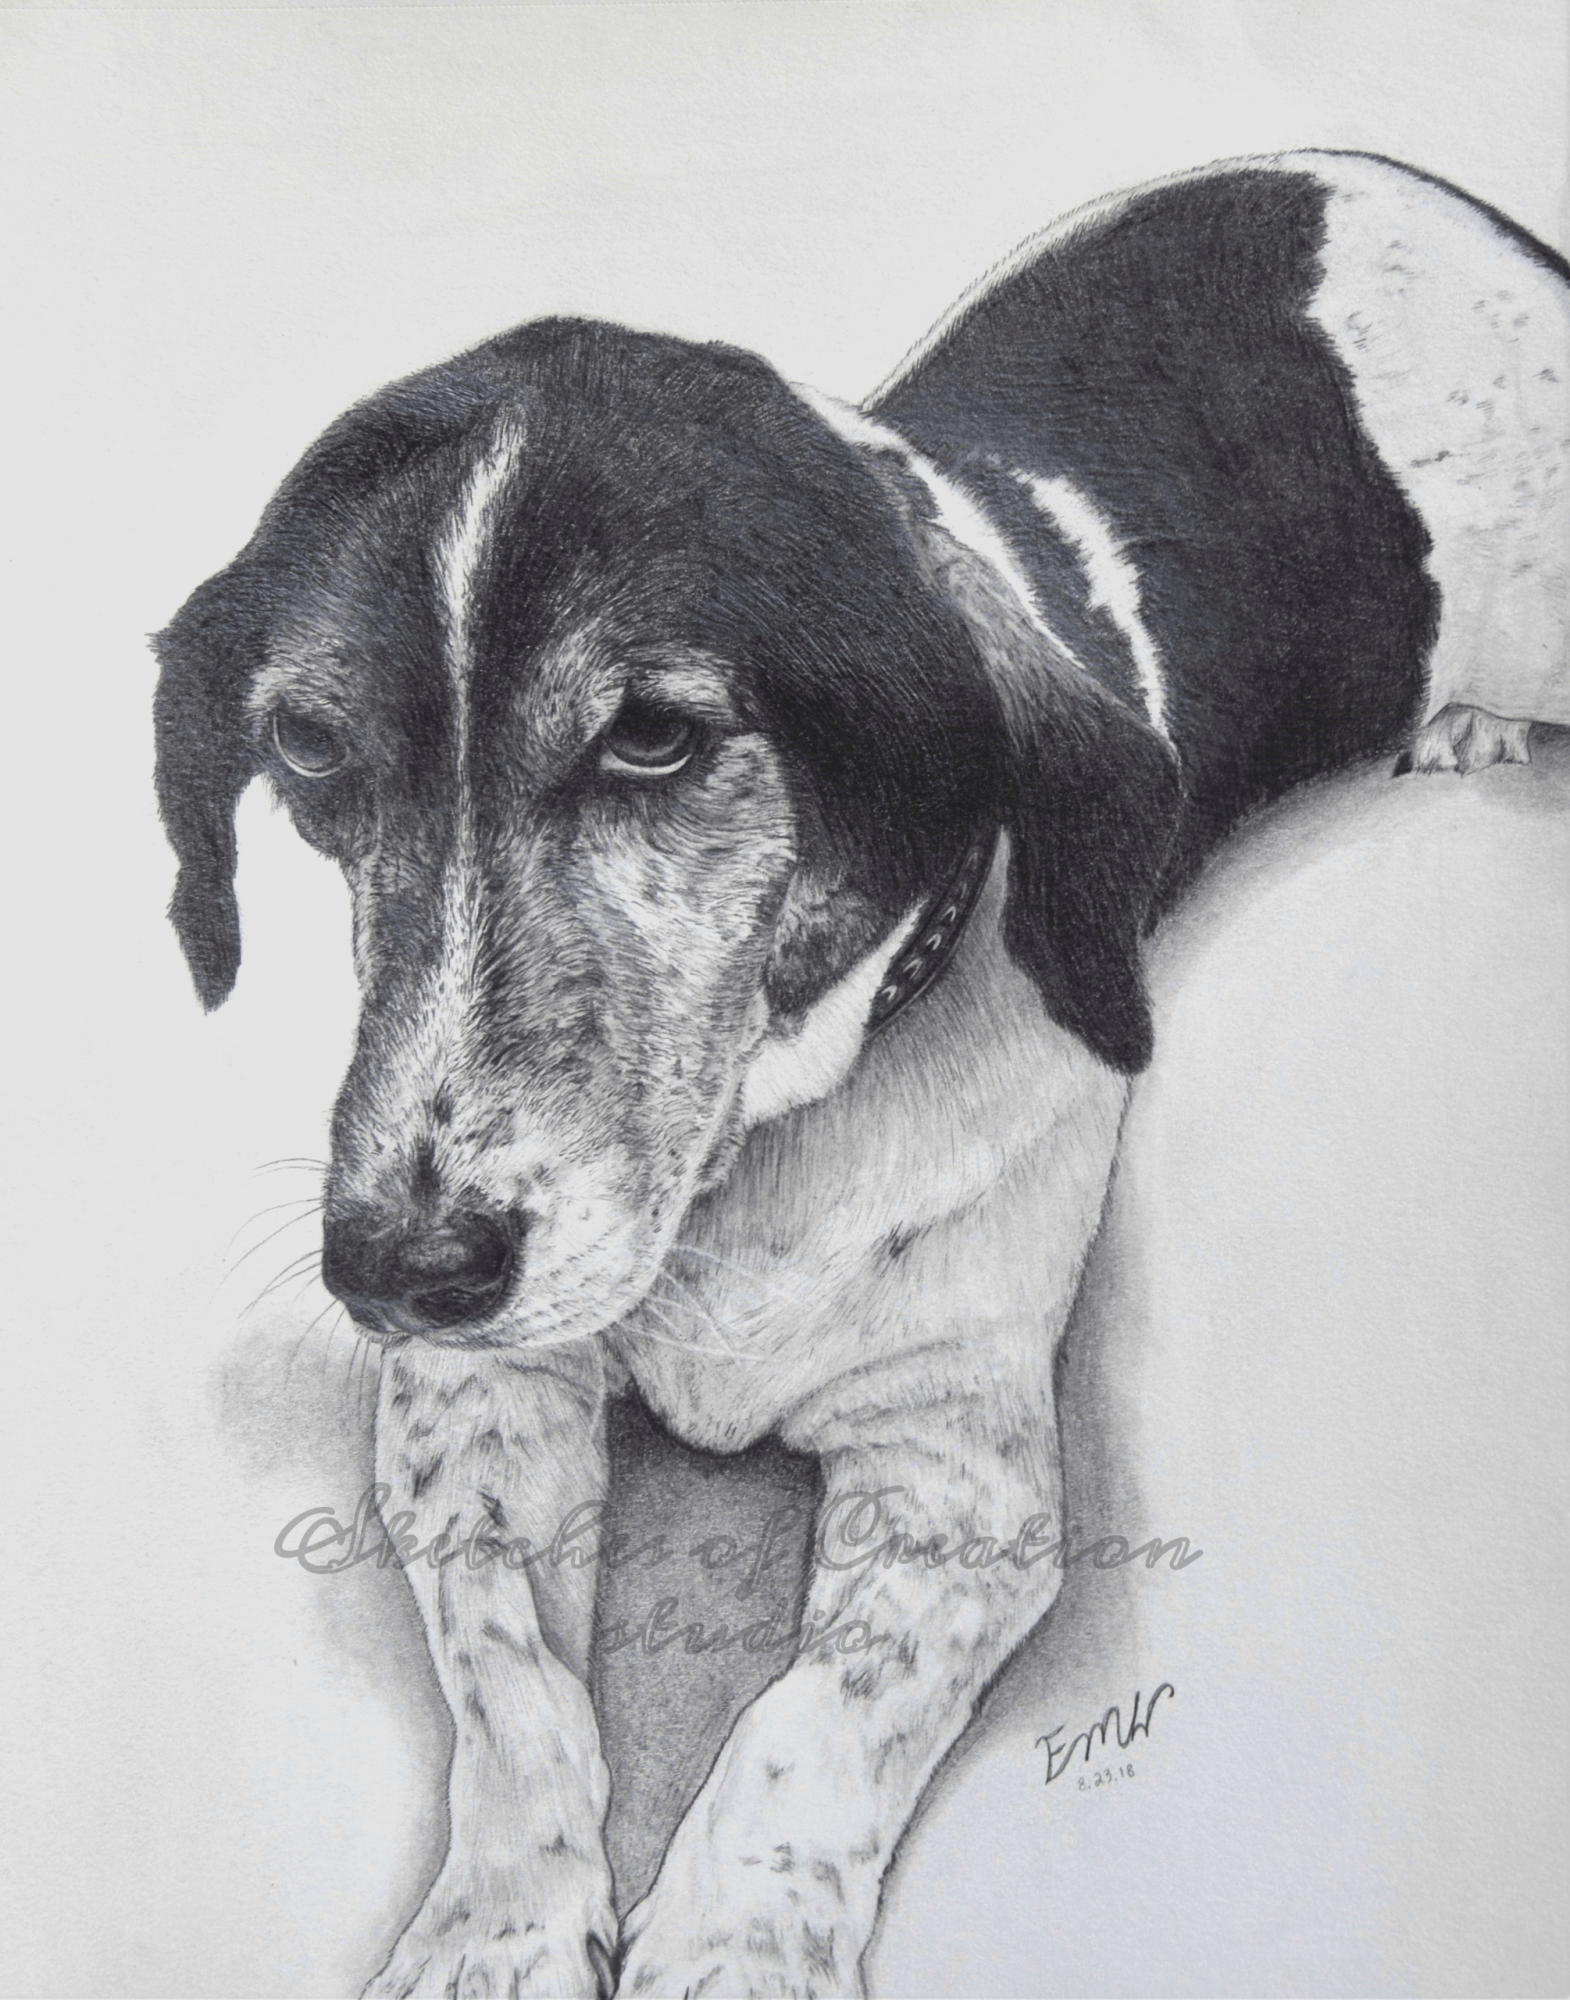 'Buddy' a drawing of a beagle and hound mix. 8x10 inches. Completed August 2018